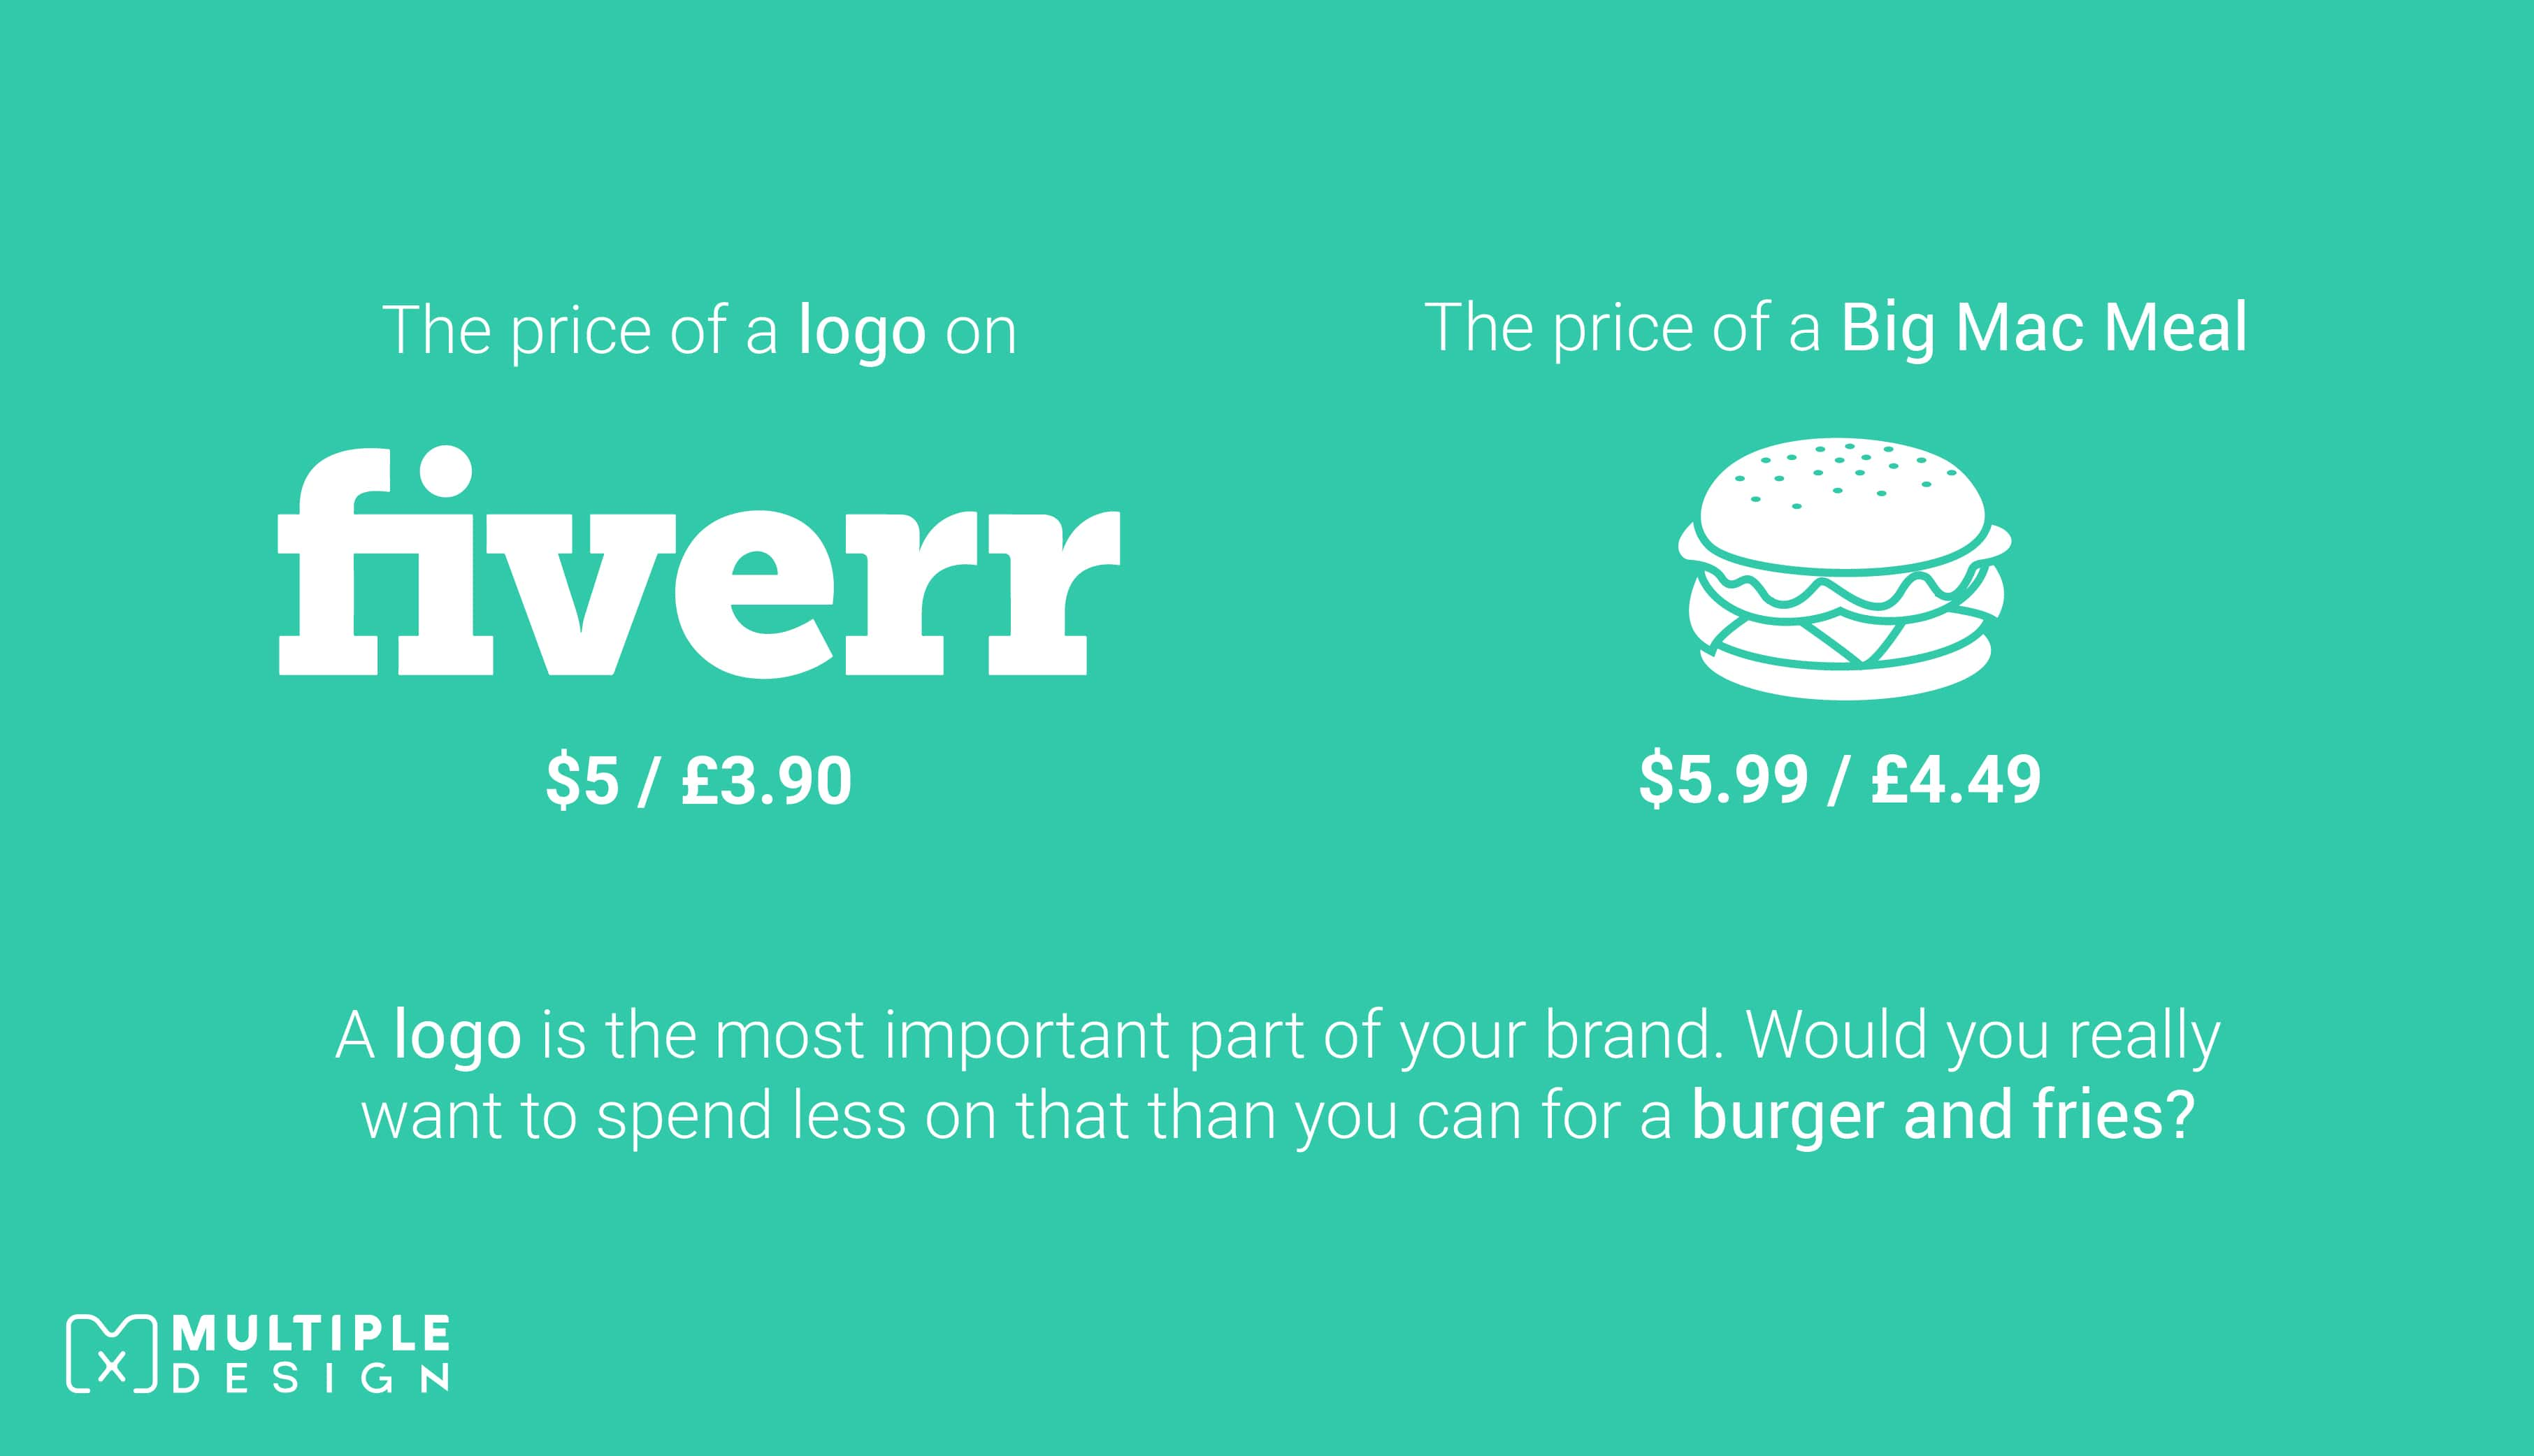 A logo is the most important part of your brand. Would you really want to spend less on it than you can for a burger and fries?